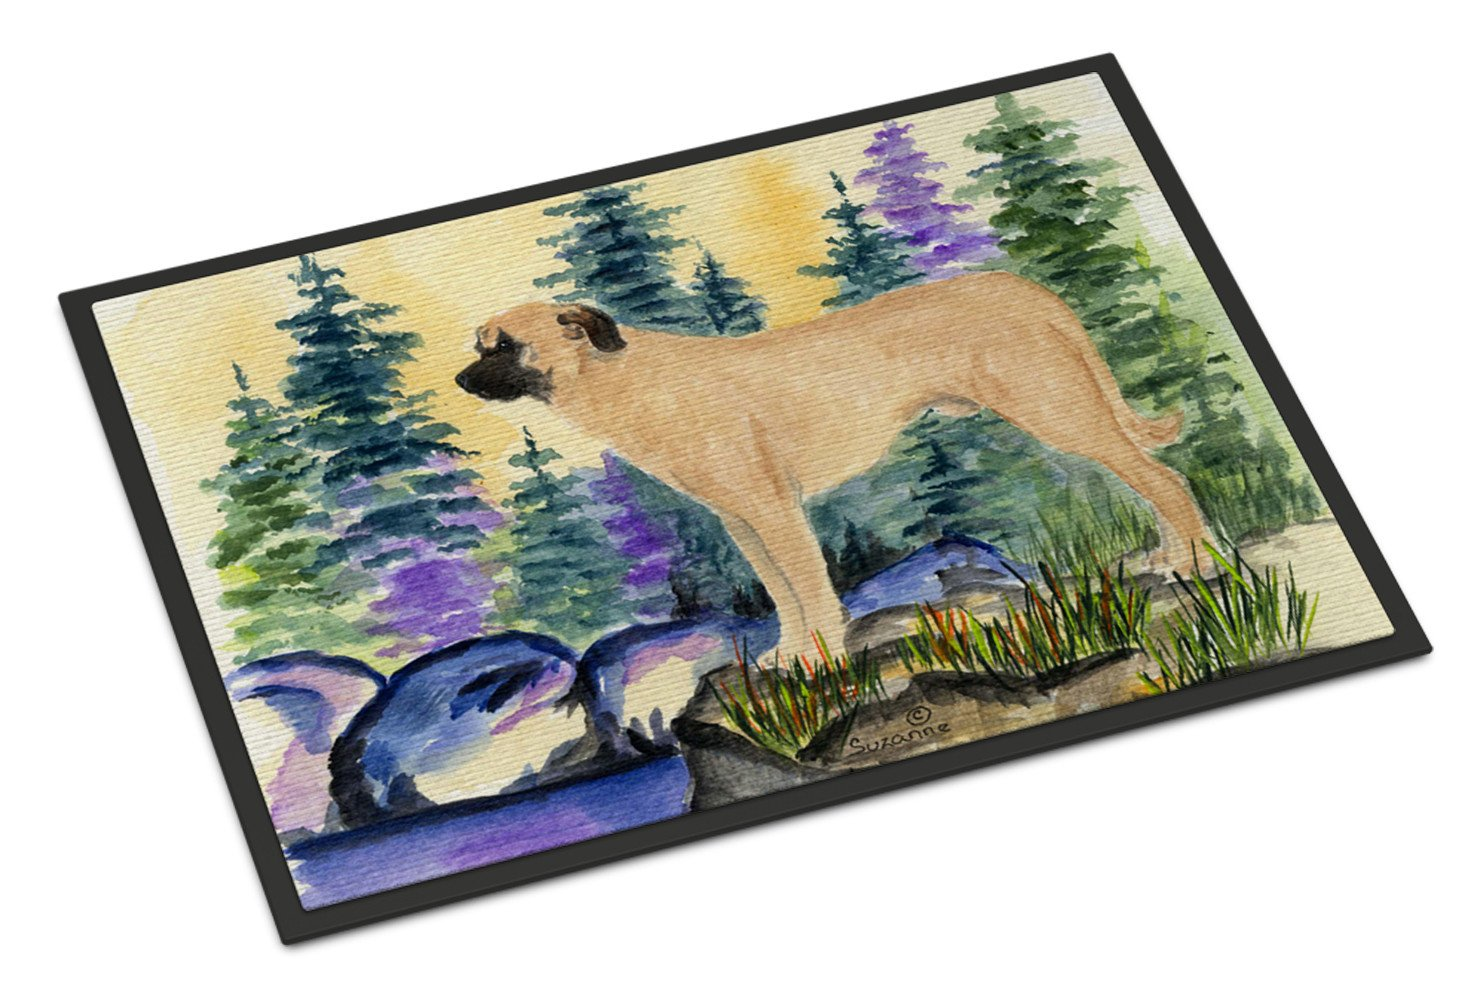 Anatolian Shepherd Indoor or Outdoor Mat 24x36 Doormat by Caroline's Treasures